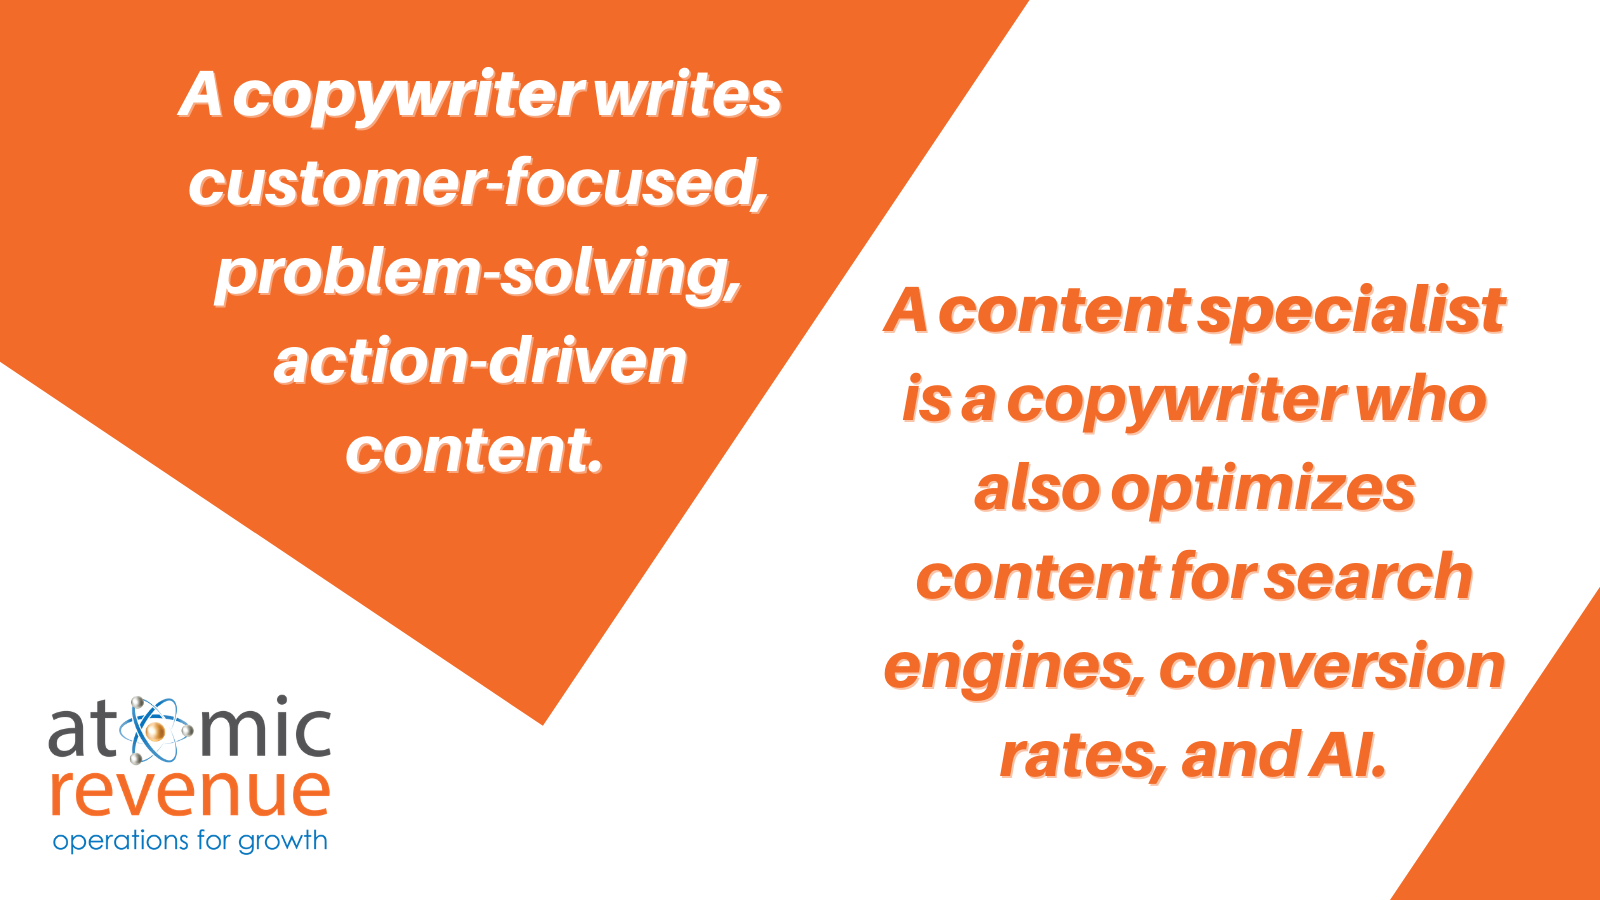 b2b copywriter content specialist difference